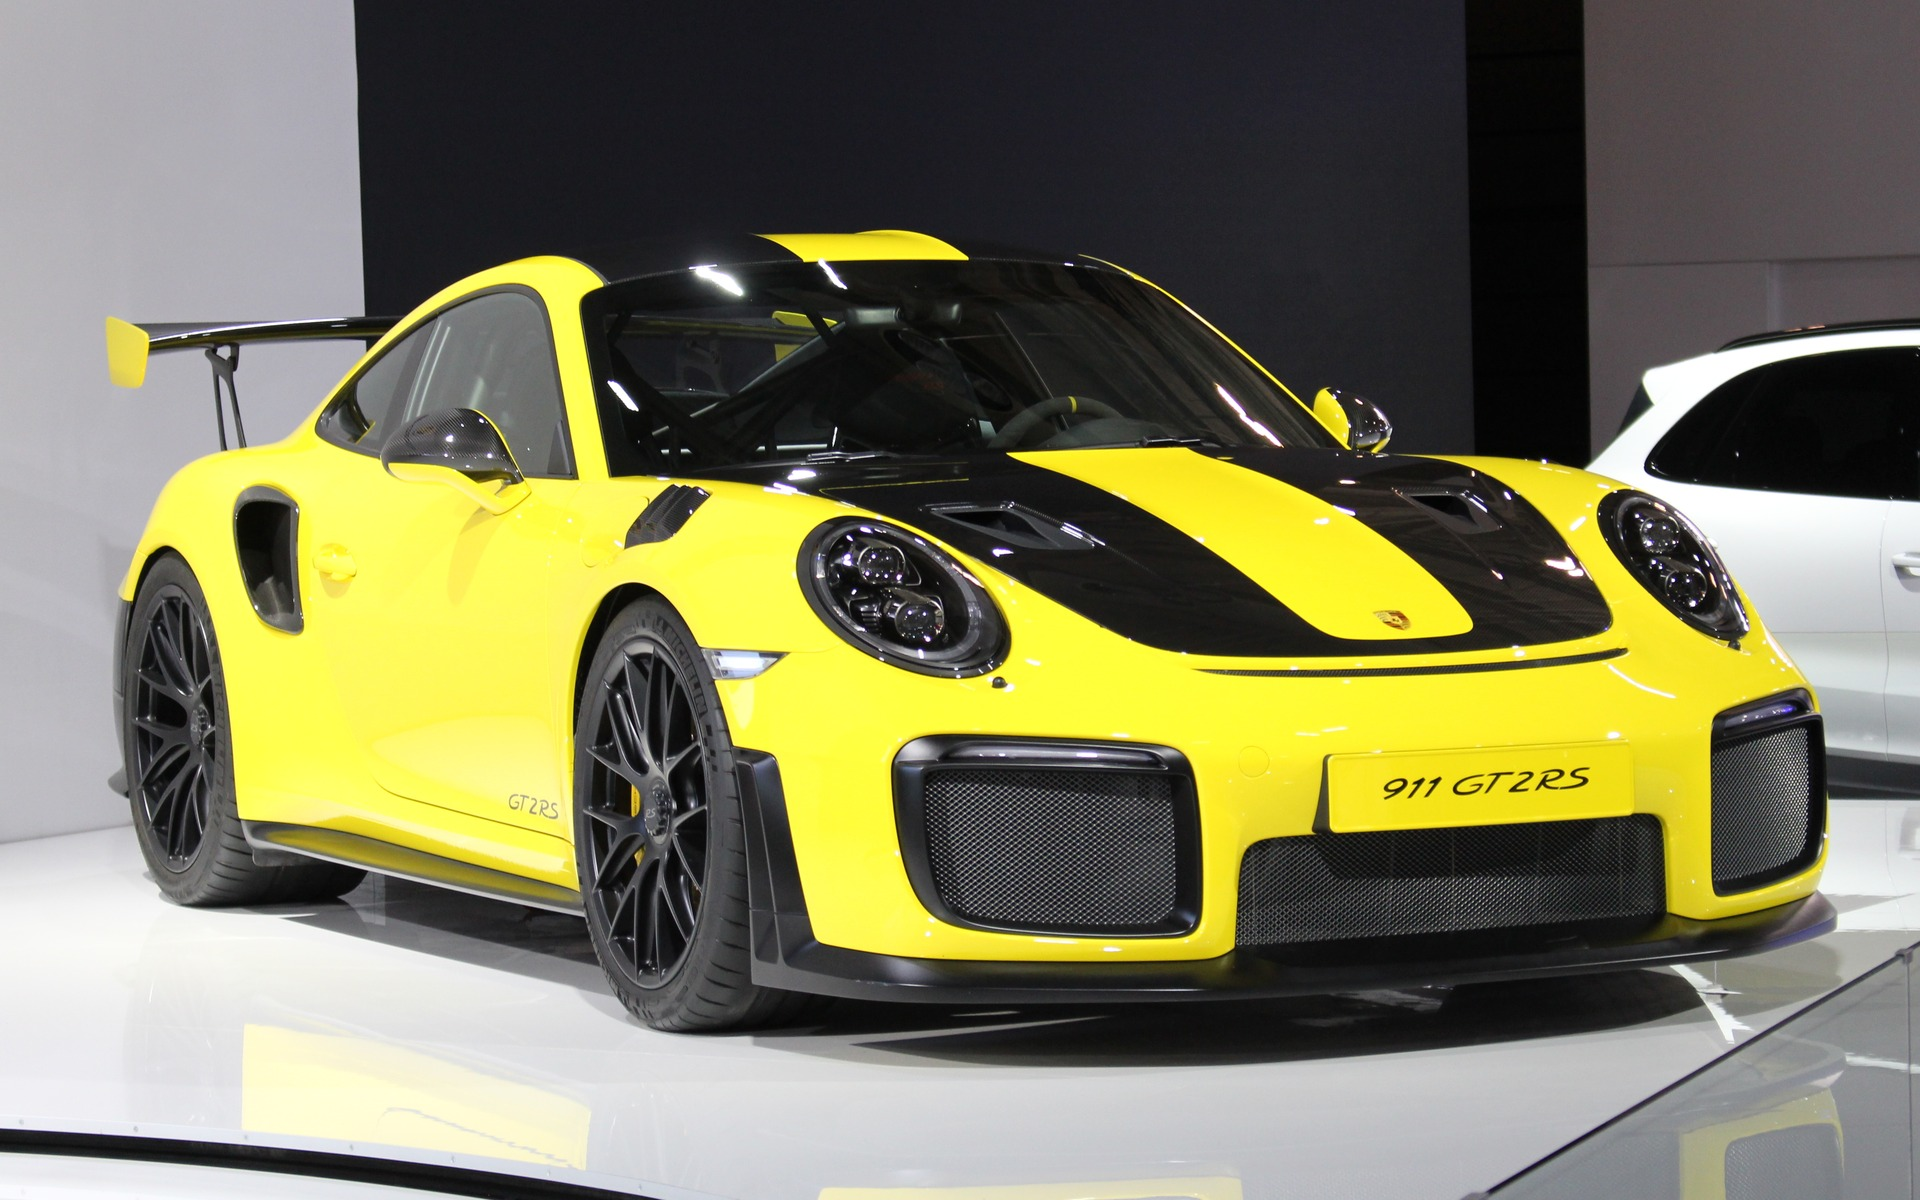 2018 porsche 911 gt2 rs presented in toronto the car guide. Black Bedroom Furniture Sets. Home Design Ideas